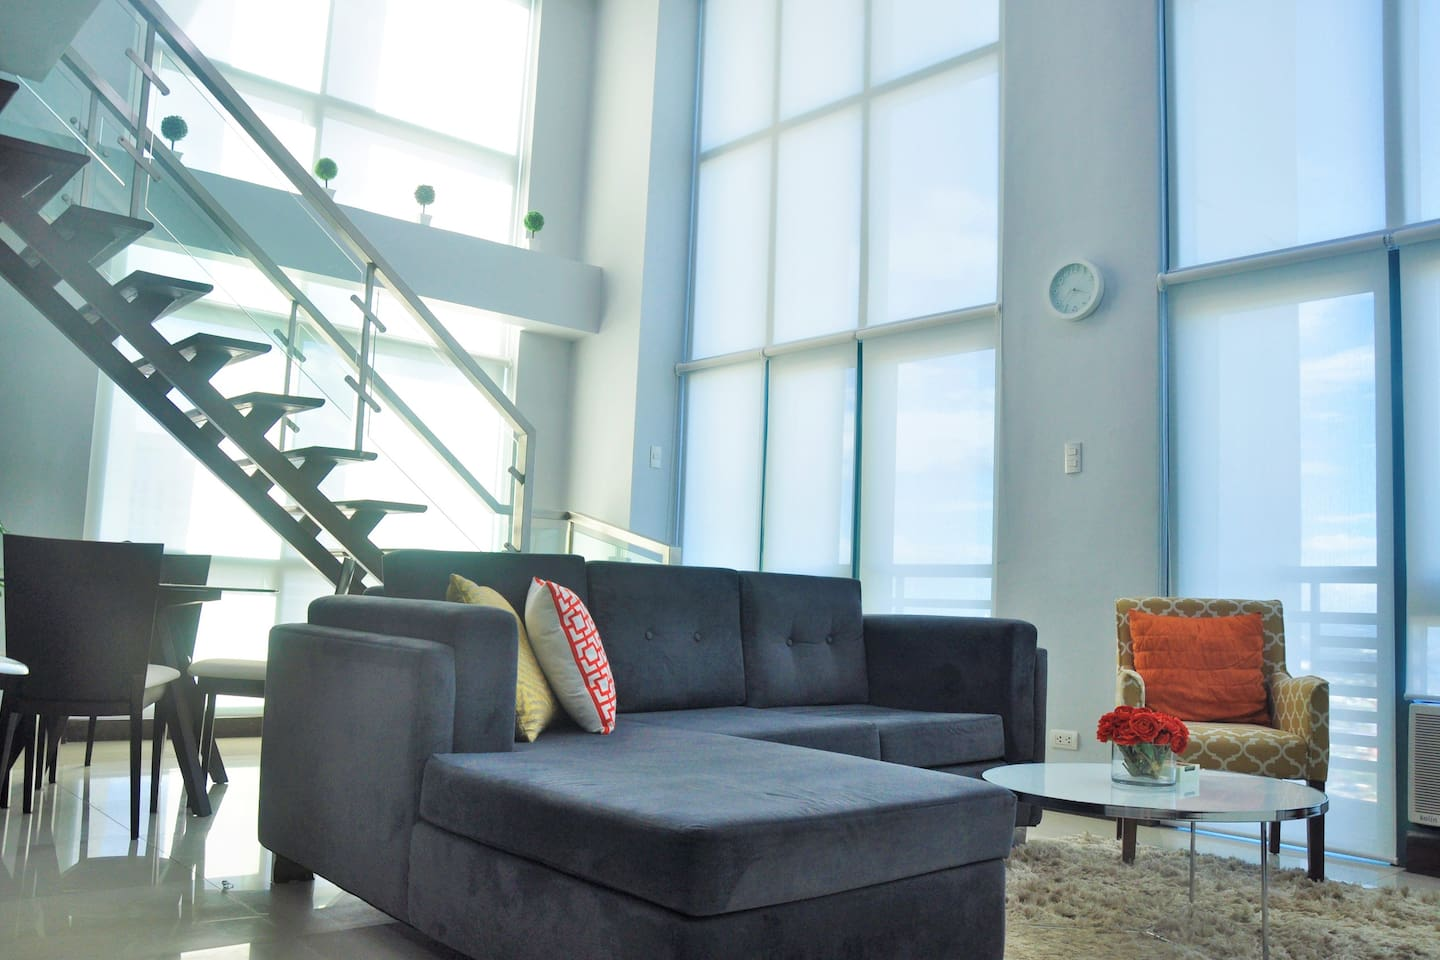 CHIC, HIGH-RISE LIVING AT EASTWOOD